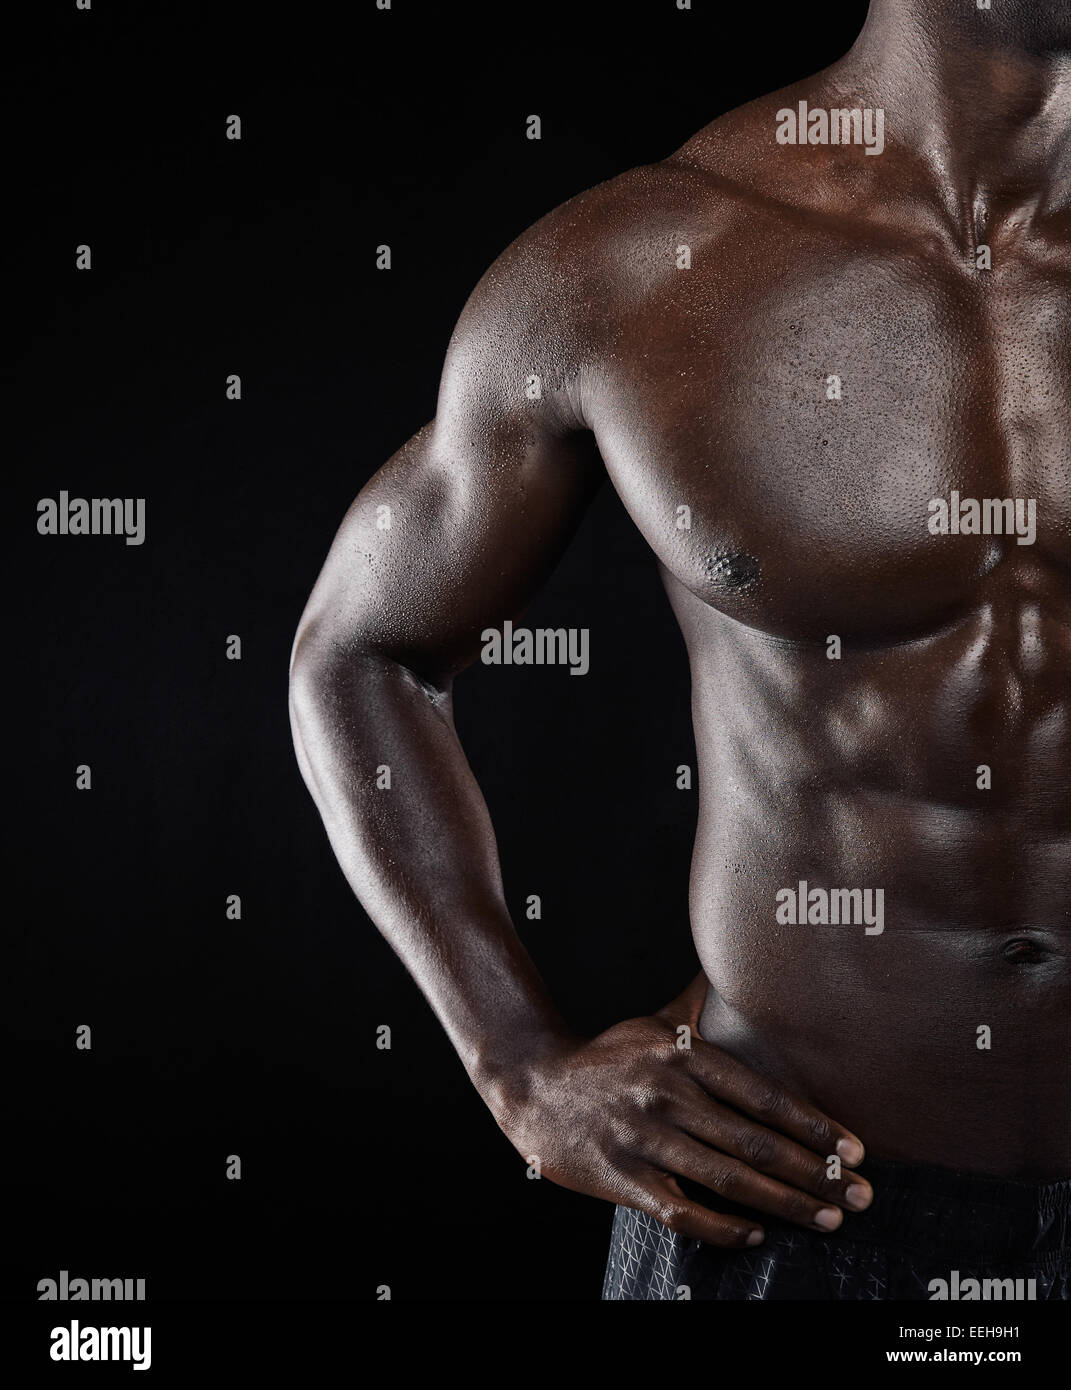 Close-up shot of young African muscular man body against black background. Shirtless male model with muscular build. - Stock Image